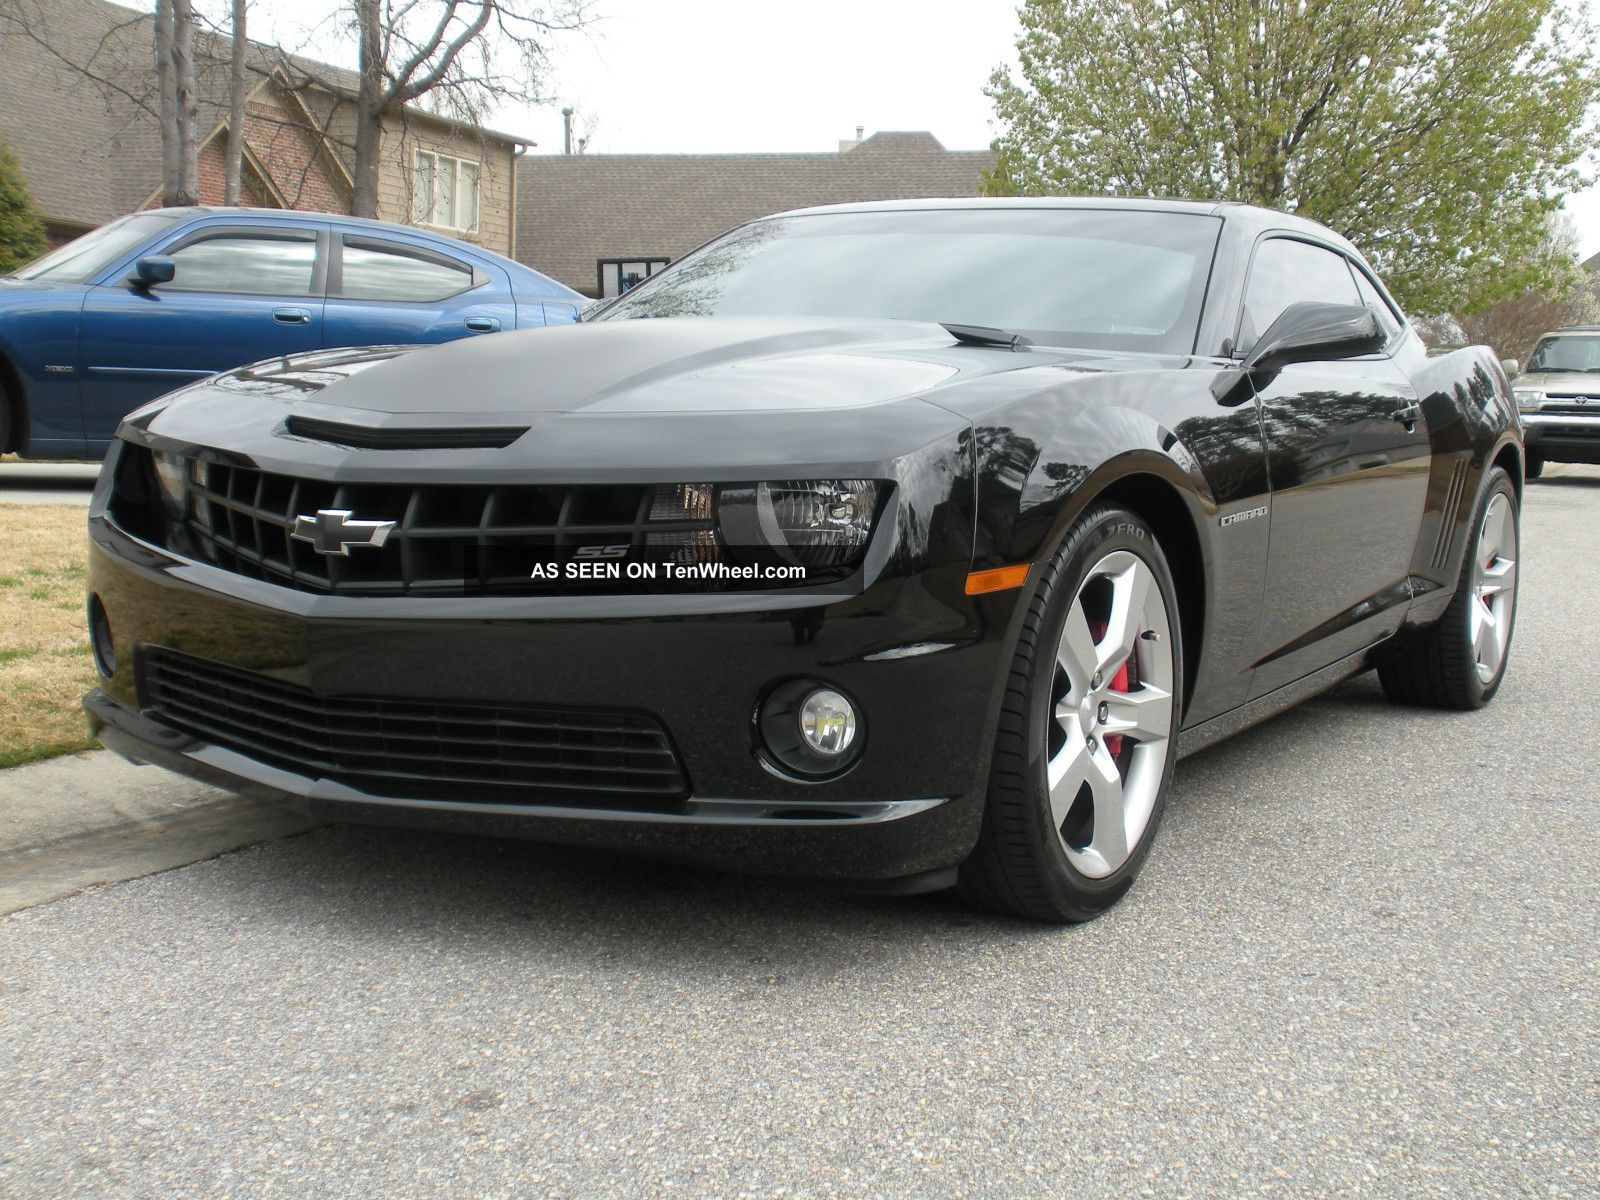 2012 chevrolet camaro ss coupe 1ss 6 speed manual trans. Black Bedroom Furniture Sets. Home Design Ideas